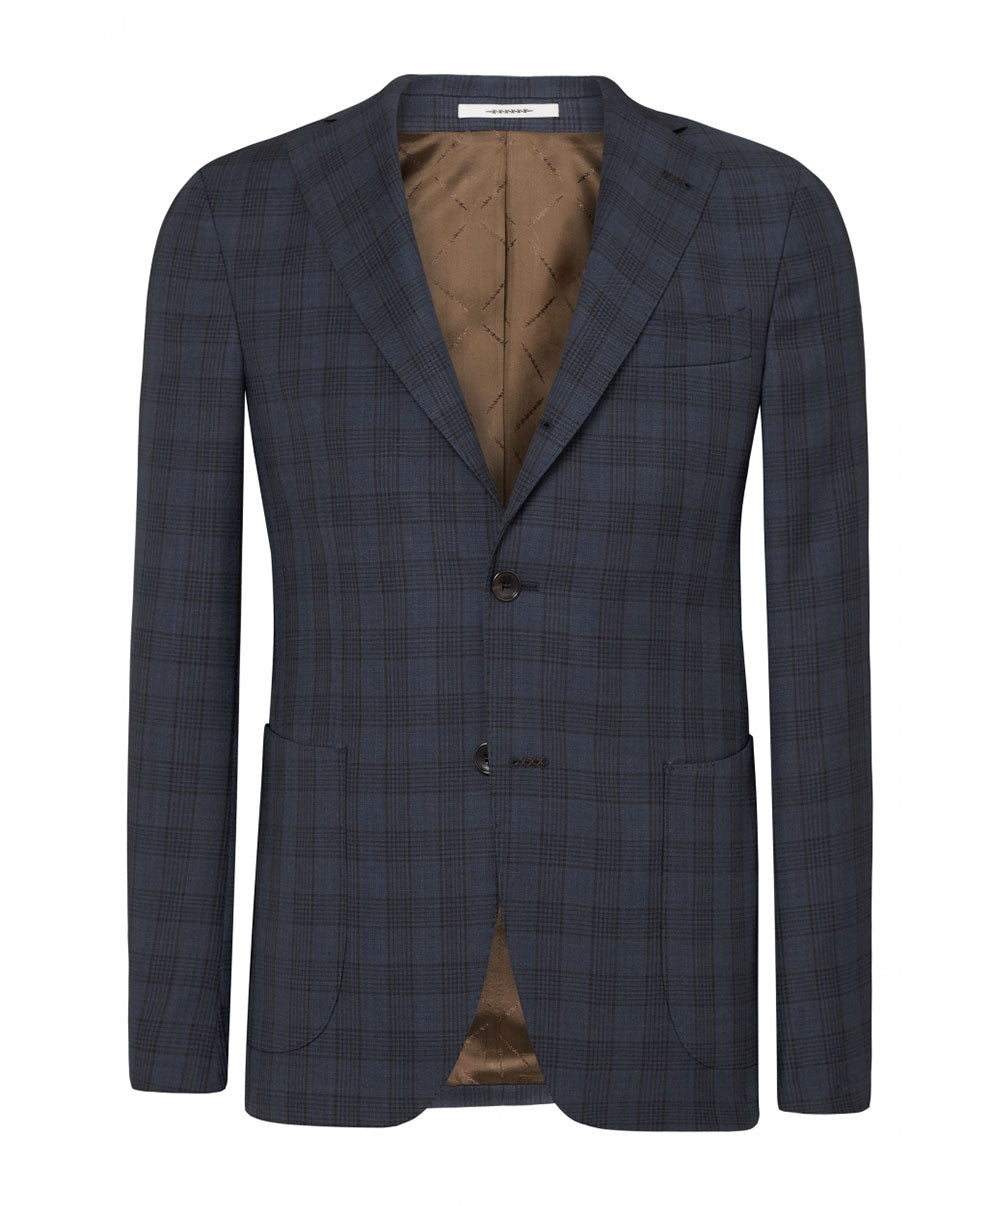 Elwyn Split Navy/Cobalt Blue Glen Check Separate Jacket